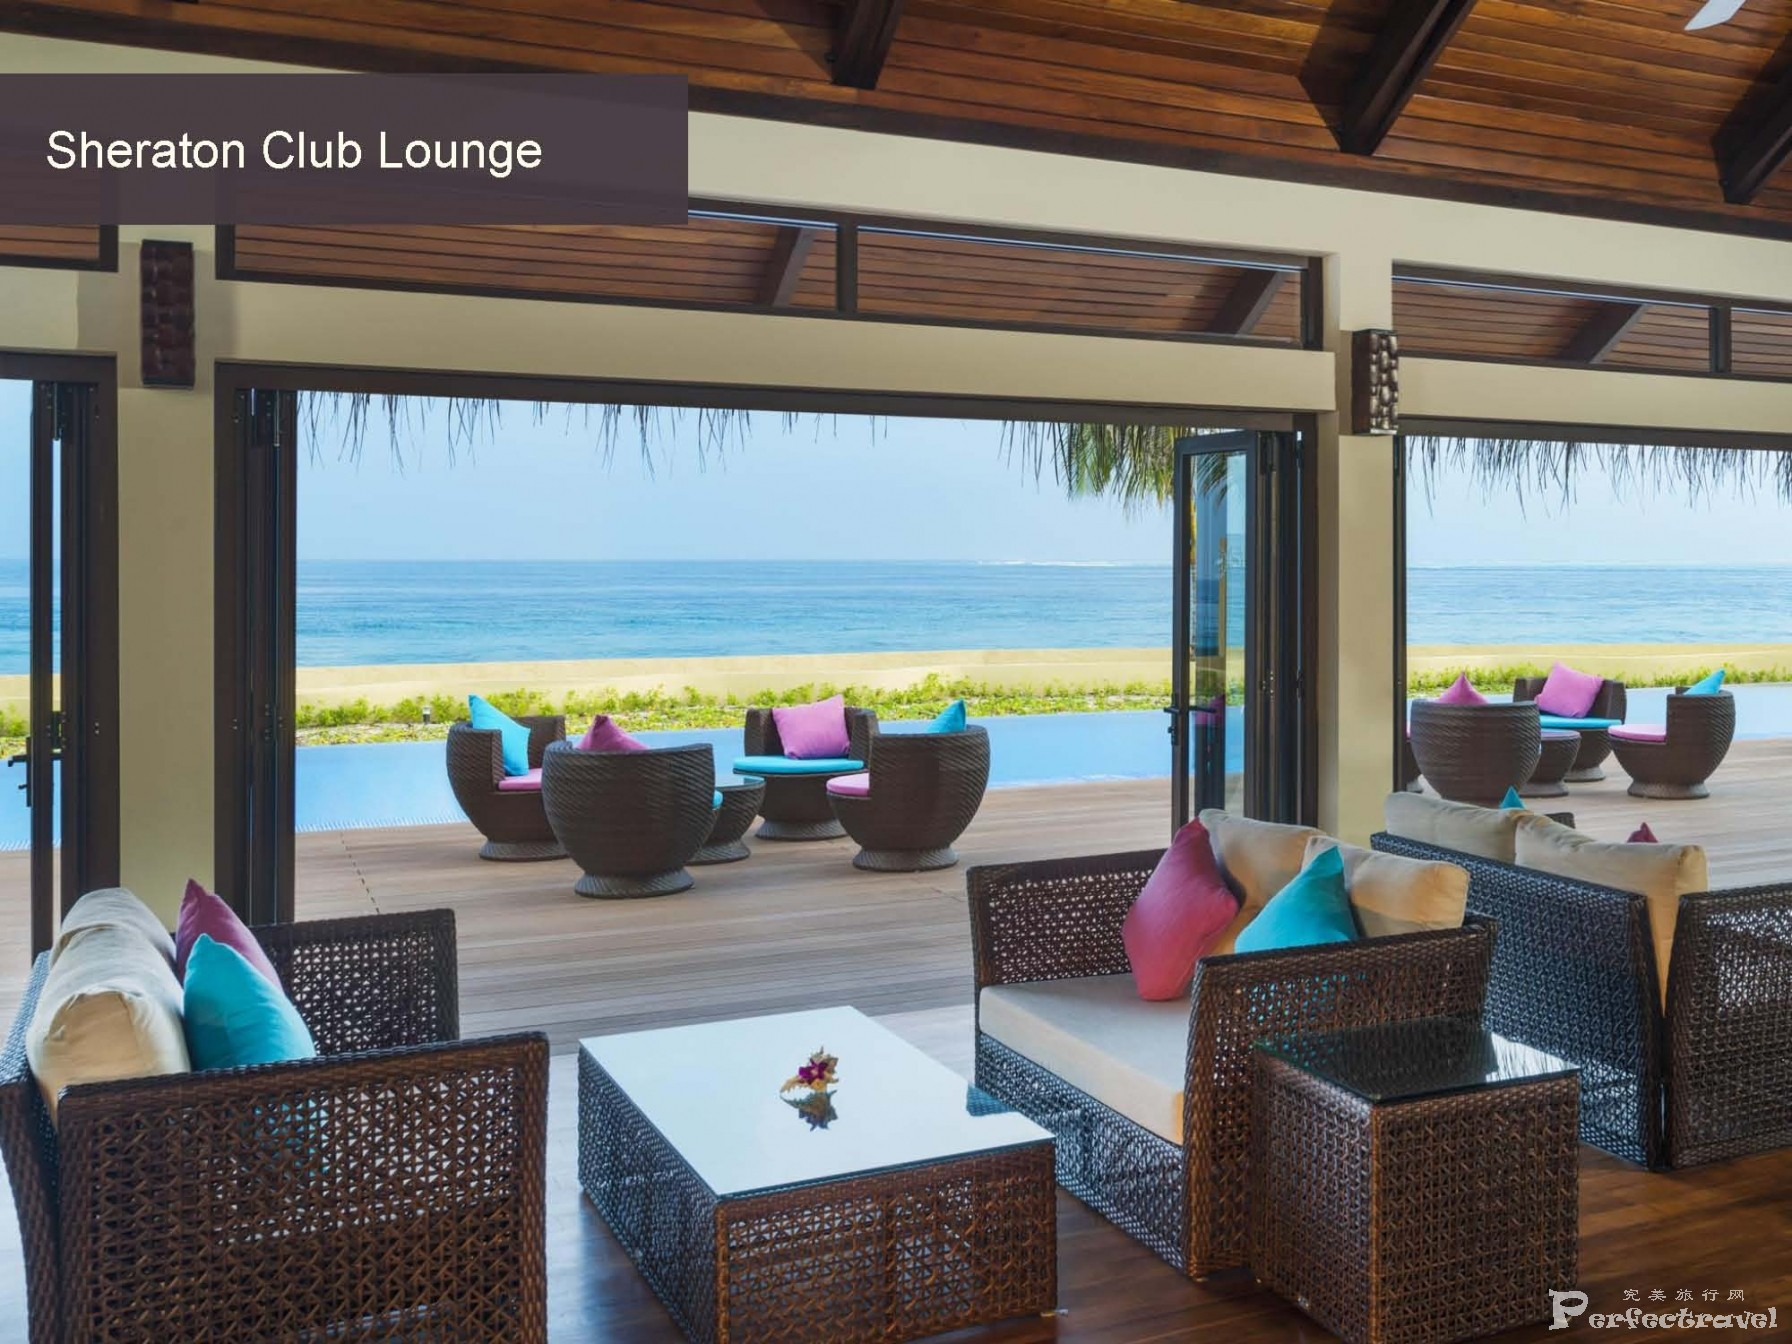 Sheraton Maldives - Overview Presentation 2015_Page_19.jpg